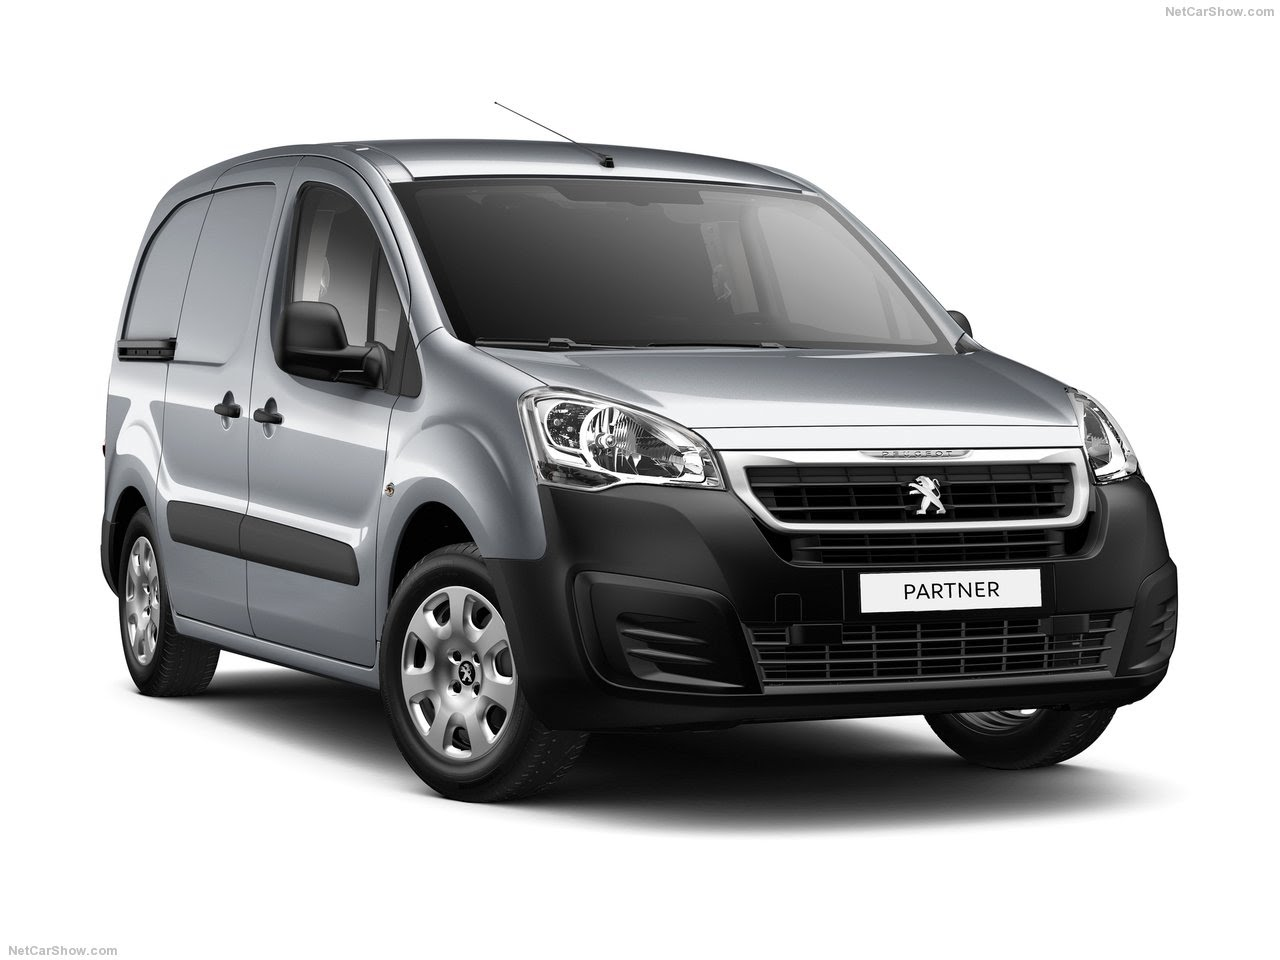 GR1 Bedrijfswagen: VW Caddy | Peugeot Partner